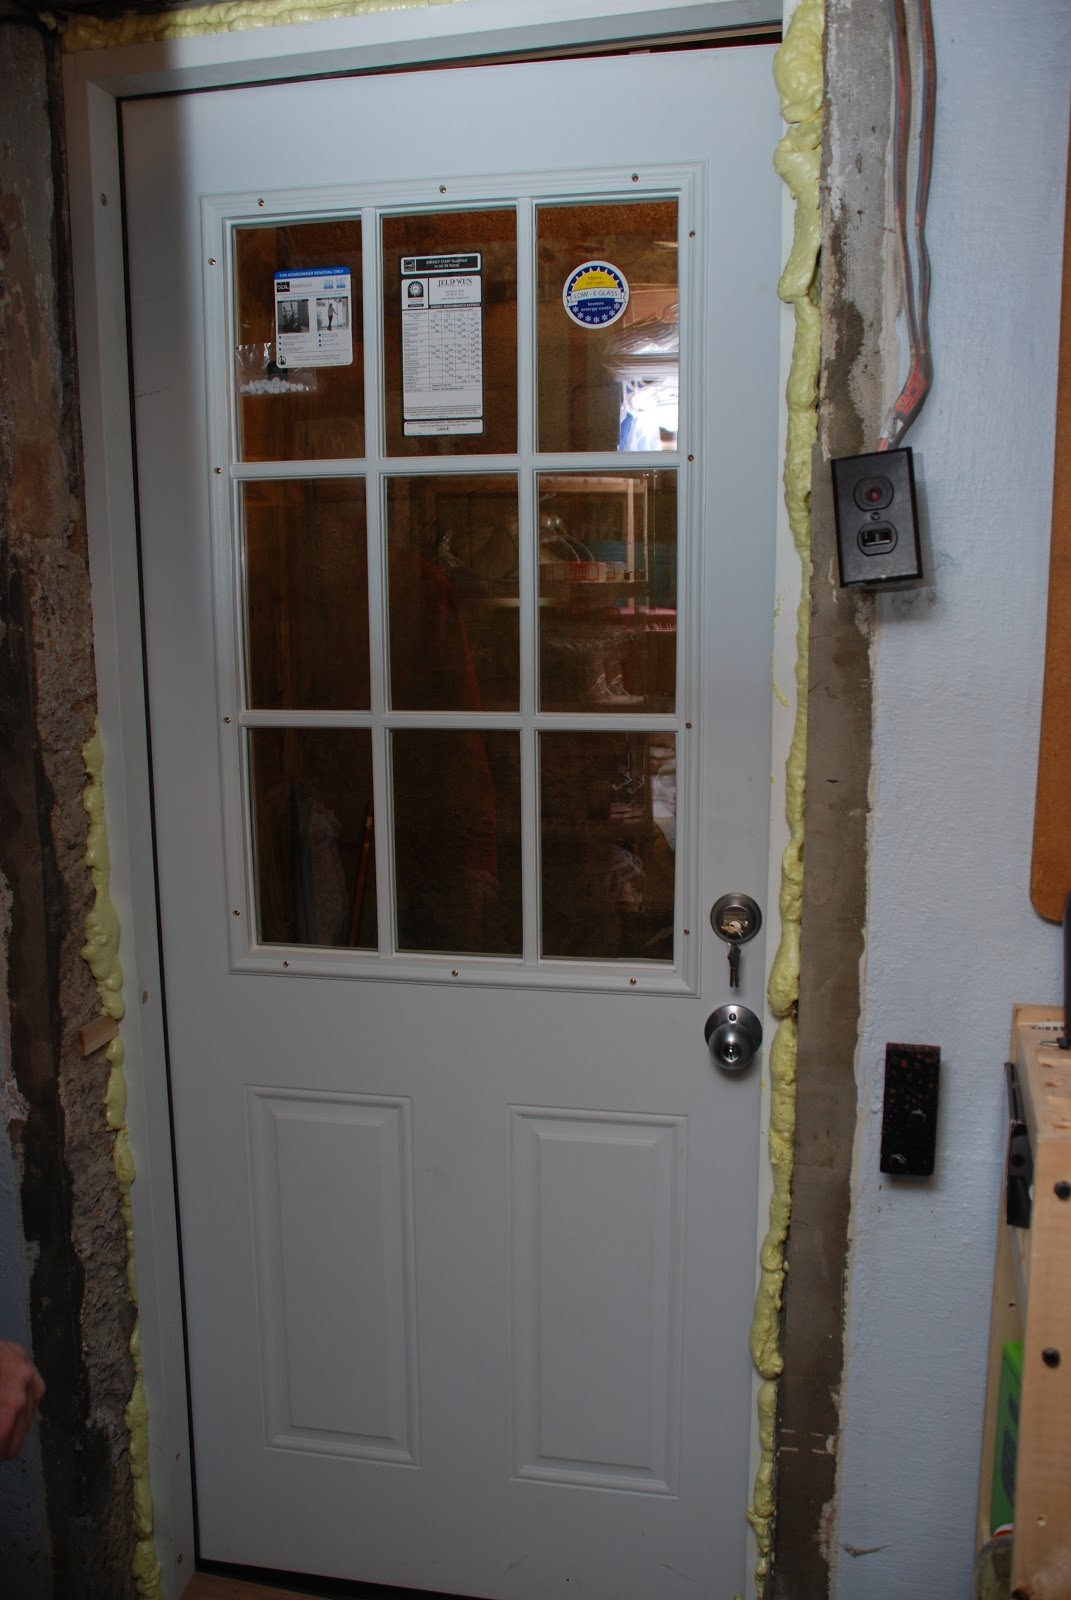 We re-secured our door alarm and called the project done for now. We\u0027ll have to wait until it\u0027s warm again to paint the ready-primed door. & our little beehive: becoming handy through home renovation ... Pezcame.Com